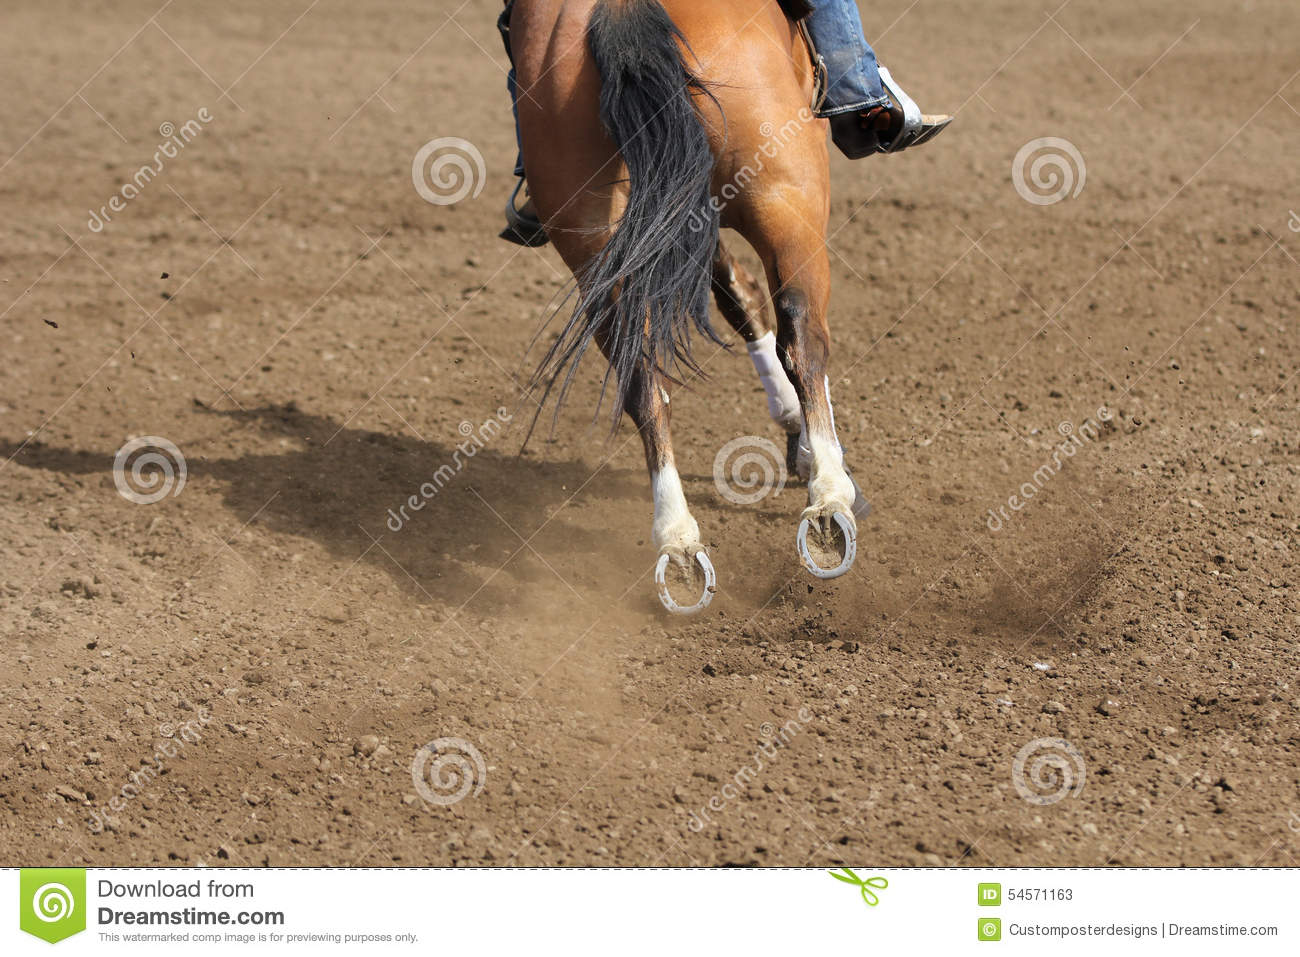 Download A Close Up View Of A Fast Running Horse And Flying Dirt. Stock Image - Image of competition, farm: 54571163